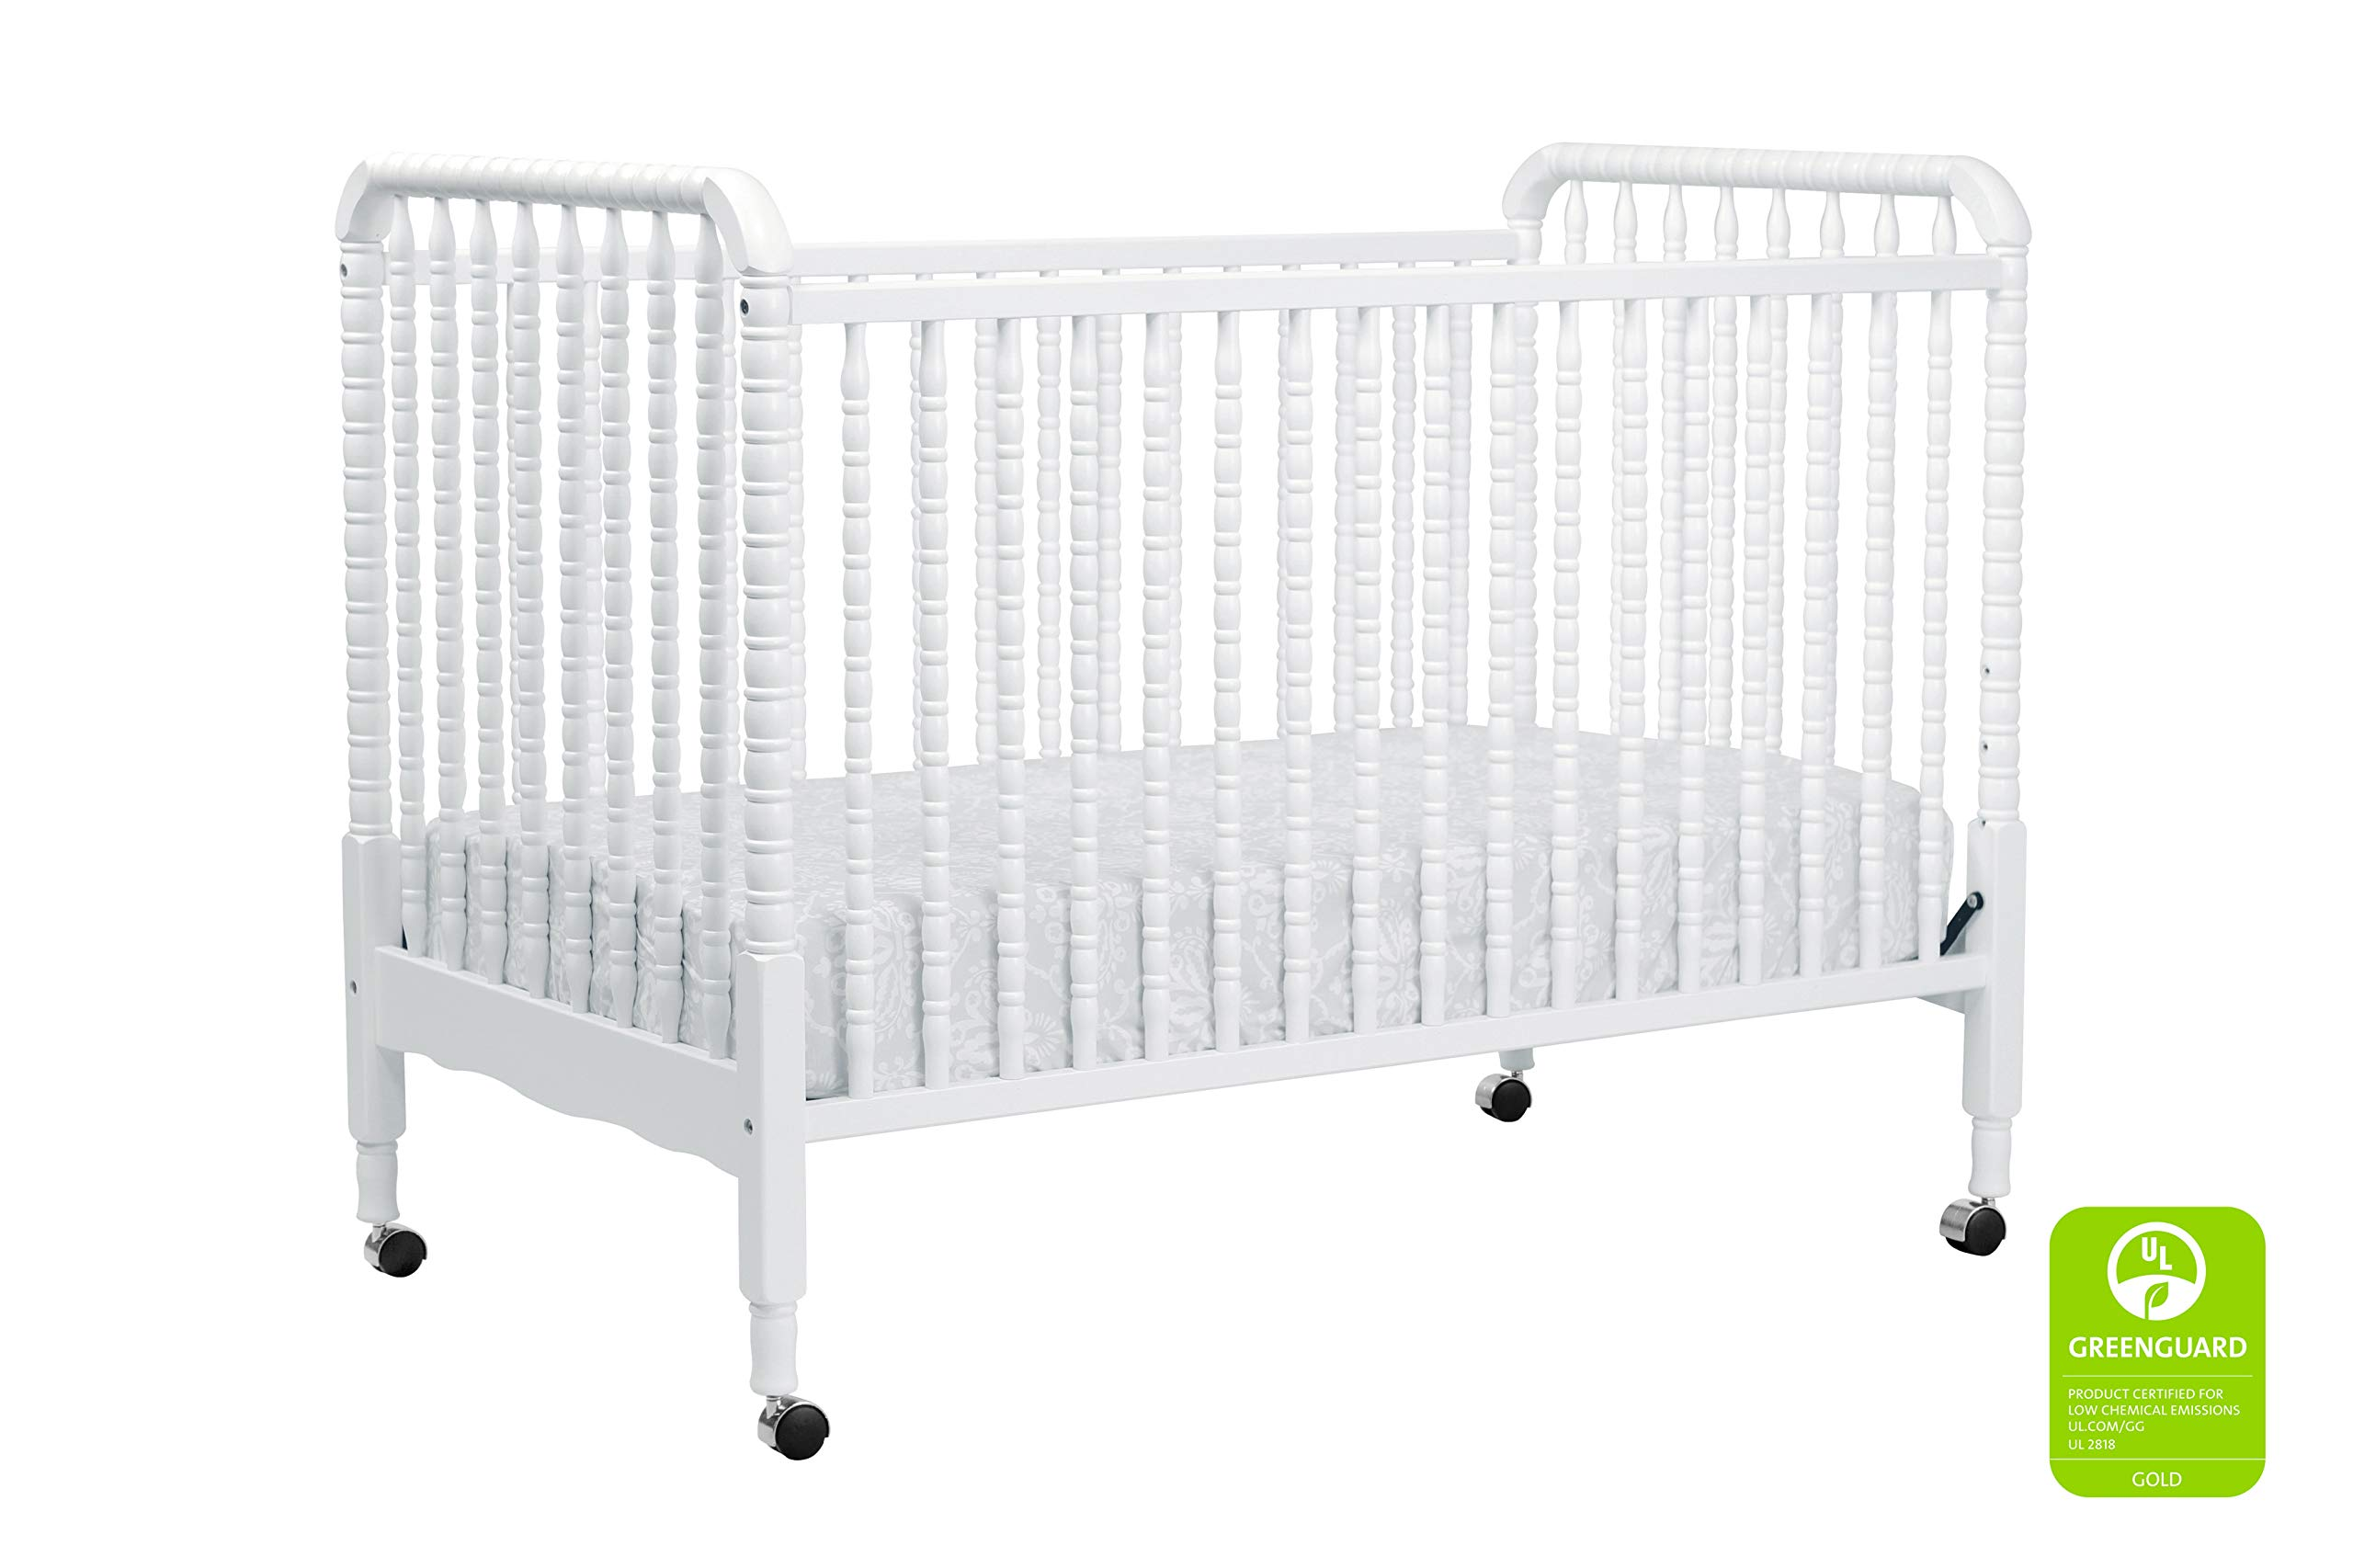 DaVinci Jenny Lind 3-in-1 Convertible Portable Crib in White - 4 Adjustable Mattress Positions, Greenguard Gold by DaVinci